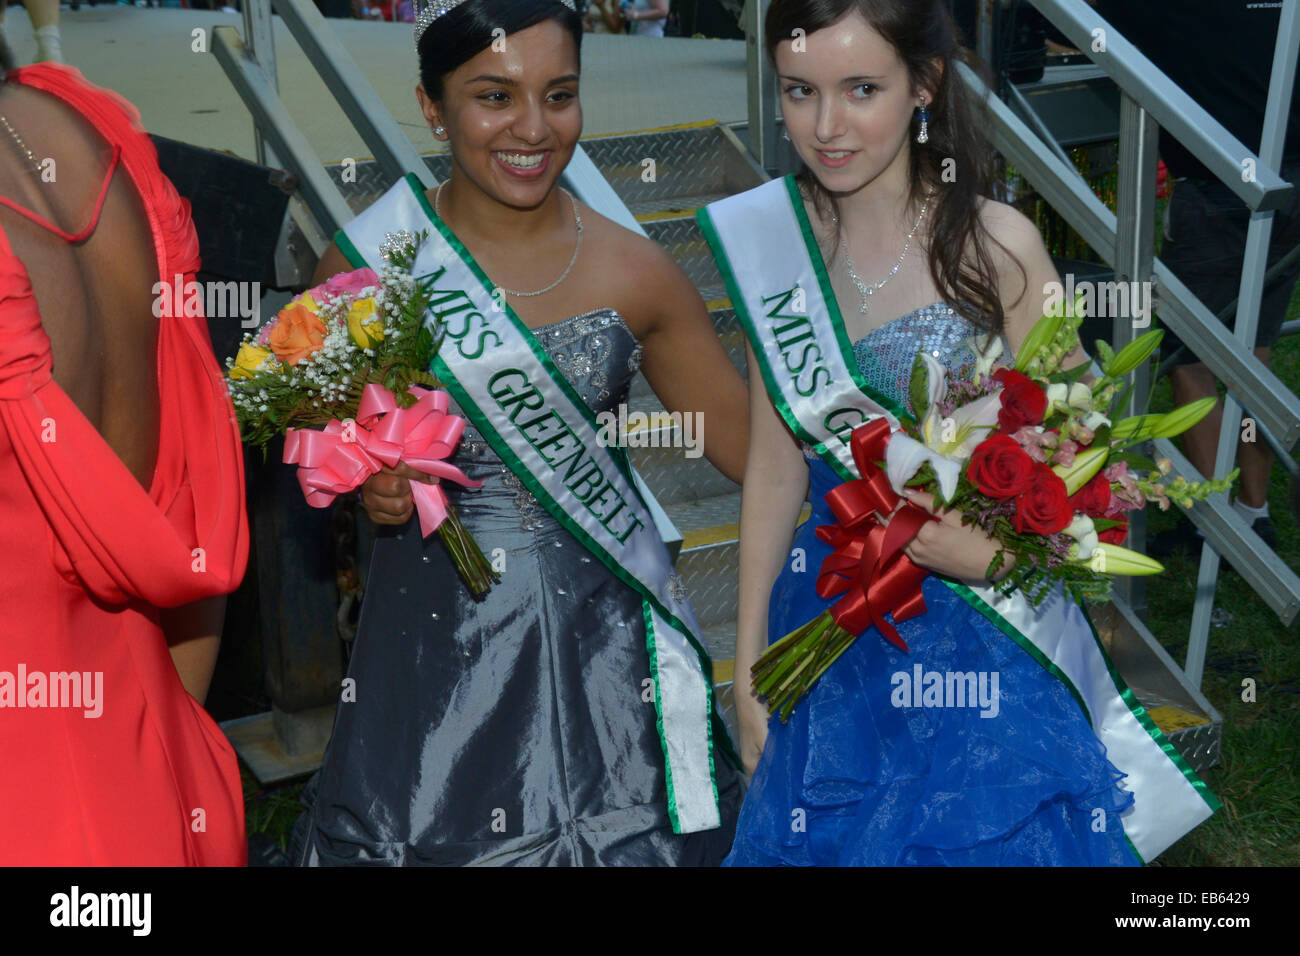 Two Miss Greenbelt winners in the beauty contest in Greenbelt, Maryland - Stock Image